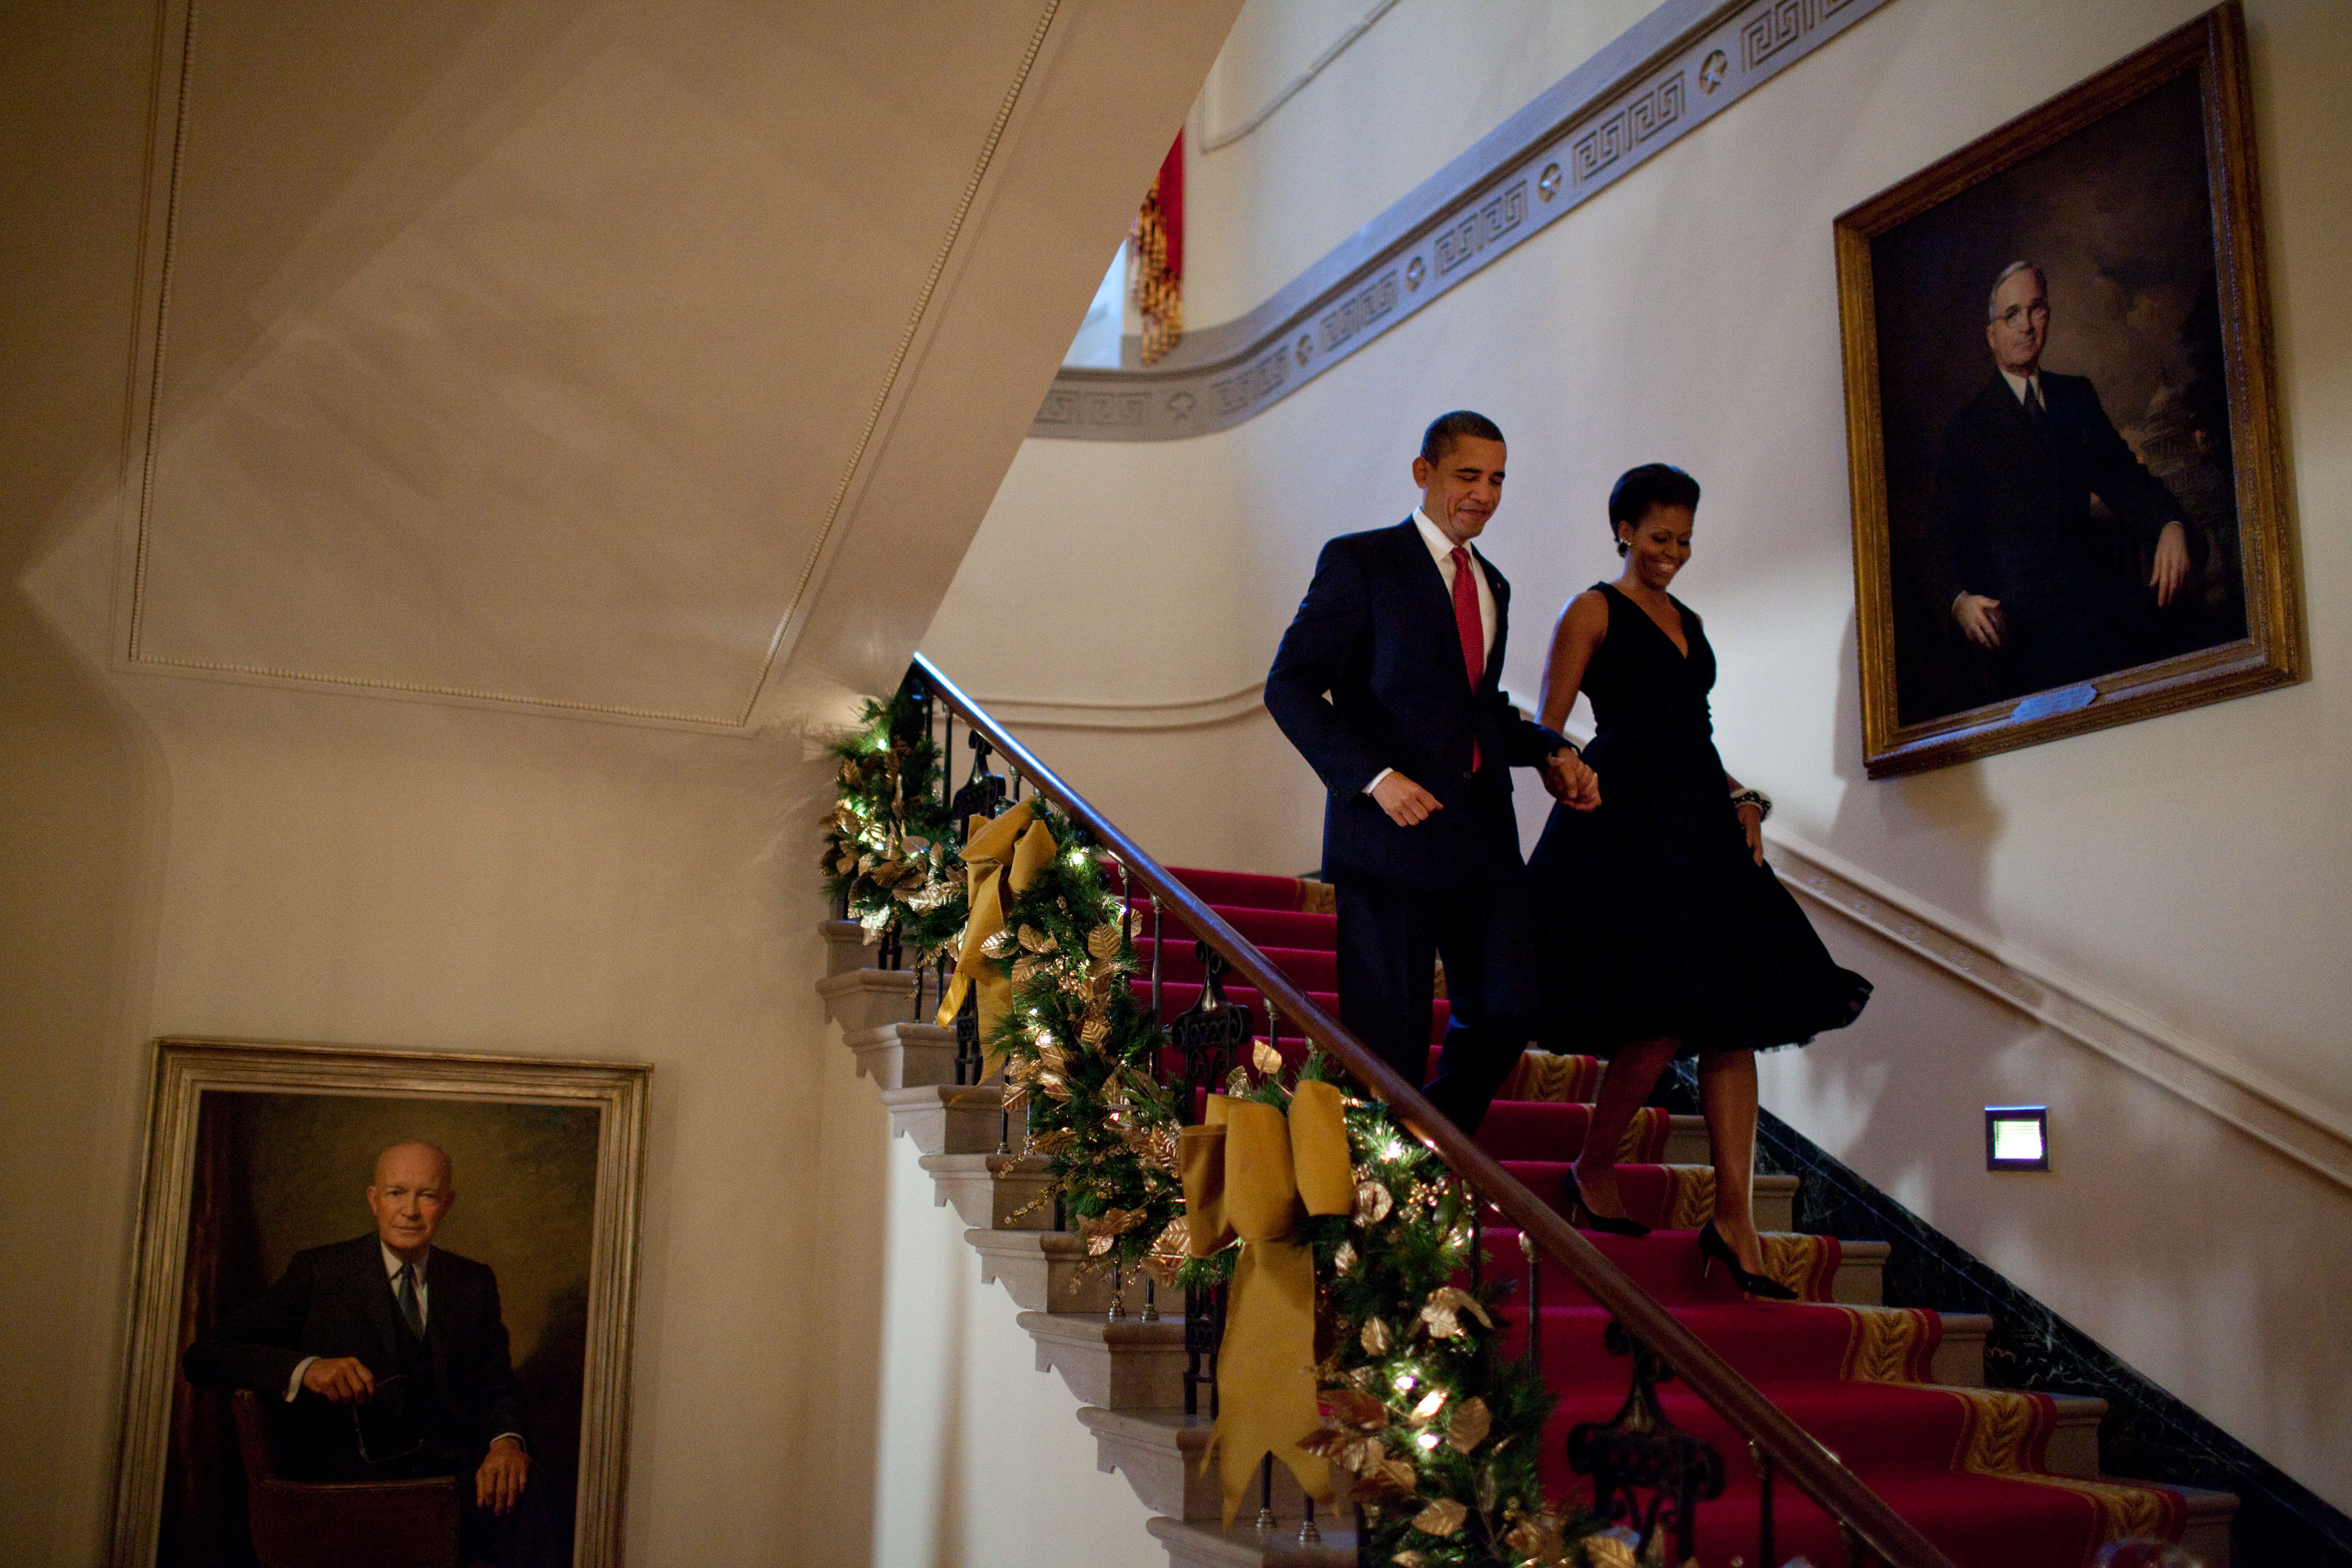 When Is The White House Decorated For Christmas